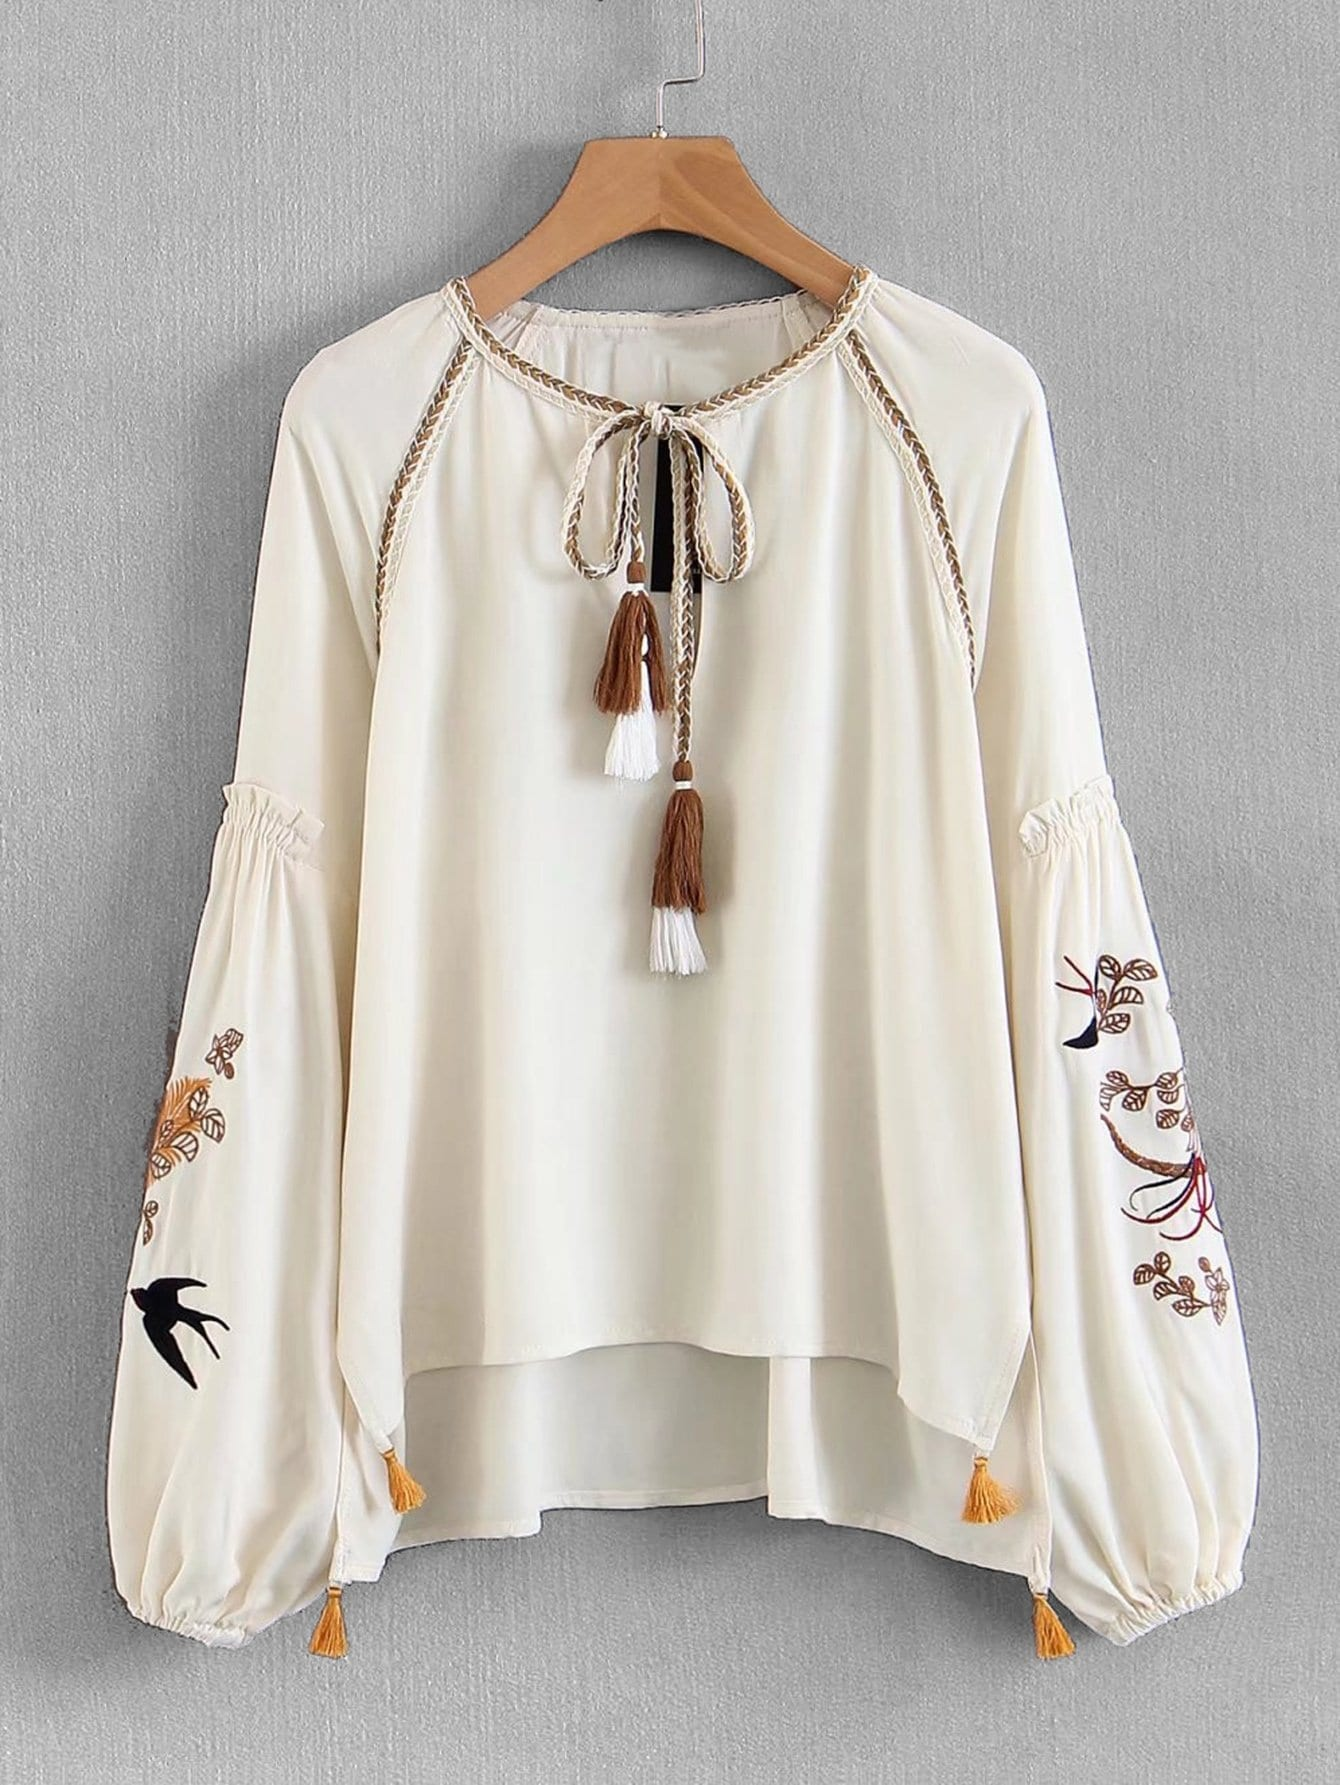 Tassel Tie Embroidery High Low Blouse pinstriped open shoulder tie detail embroidery blouse